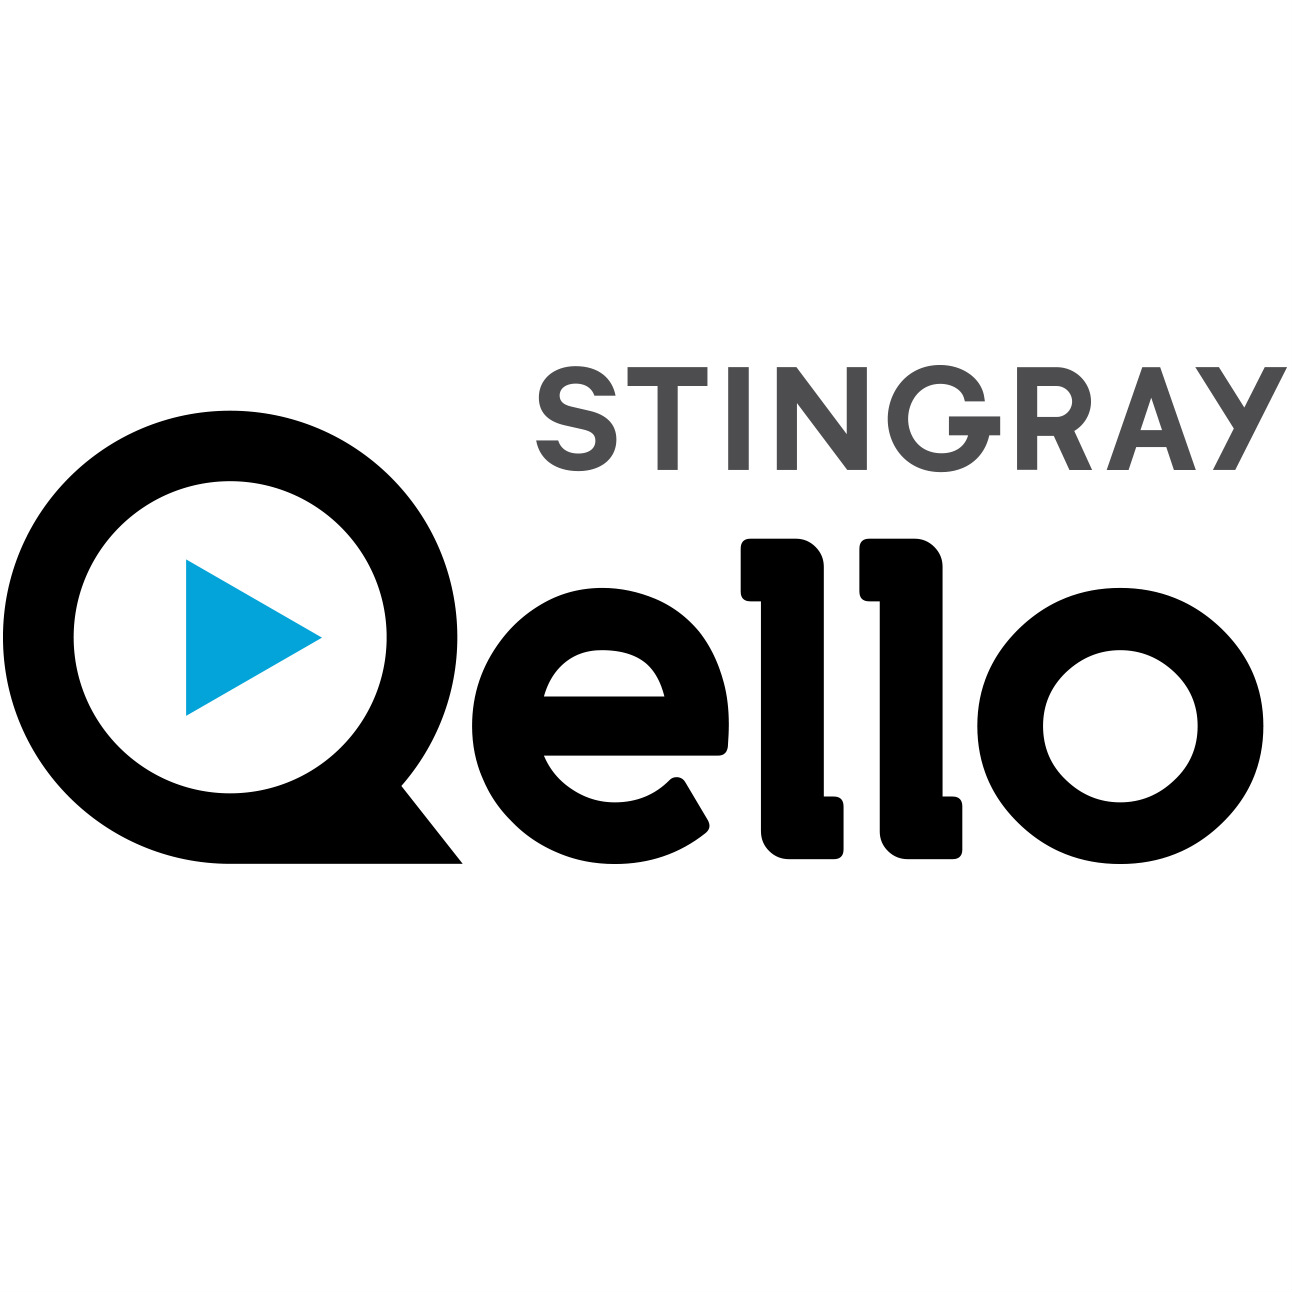 Qello-Stingray-Logo-Black_SQUARE.jpg